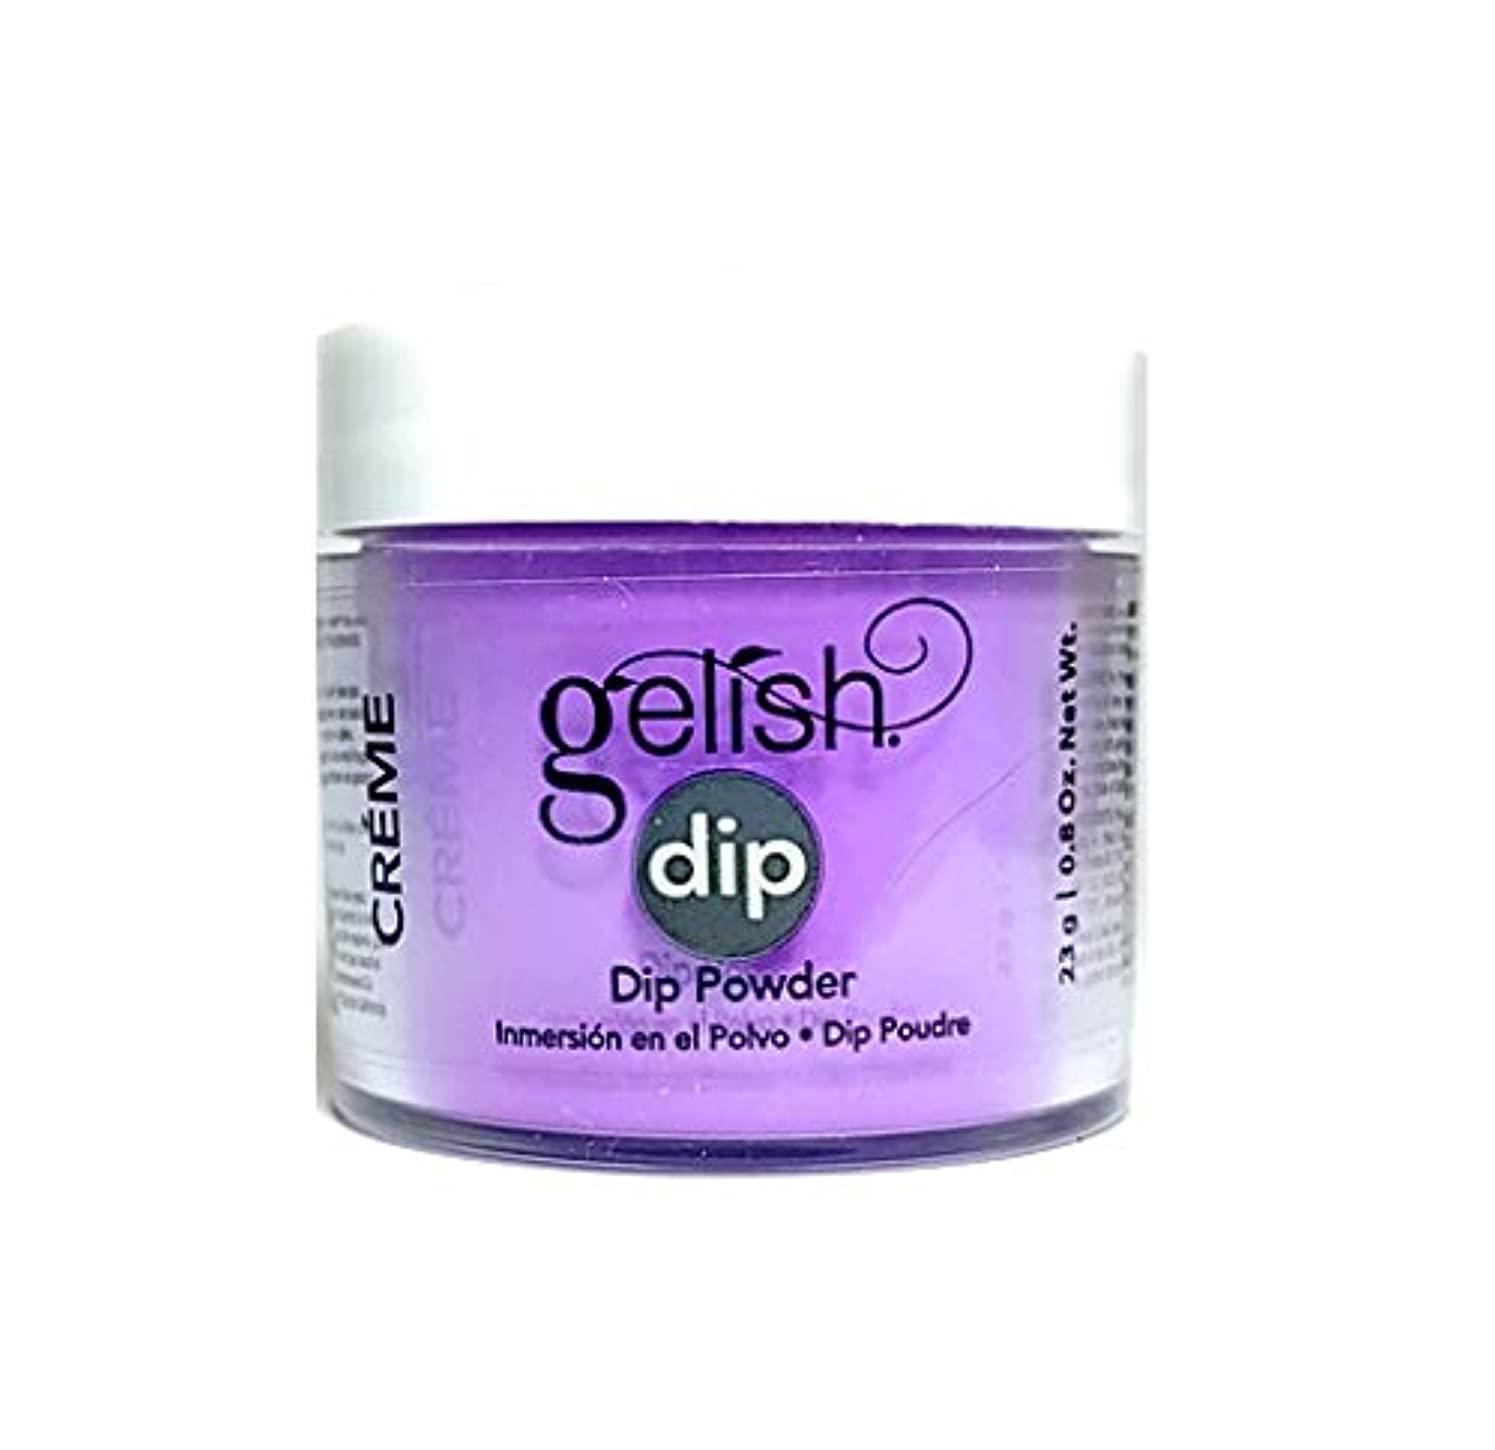 寮パーツ多くの危険がある状況Harmony Gelish - Dip Powder - You Glare, I Glow - 23g / 0.8oz